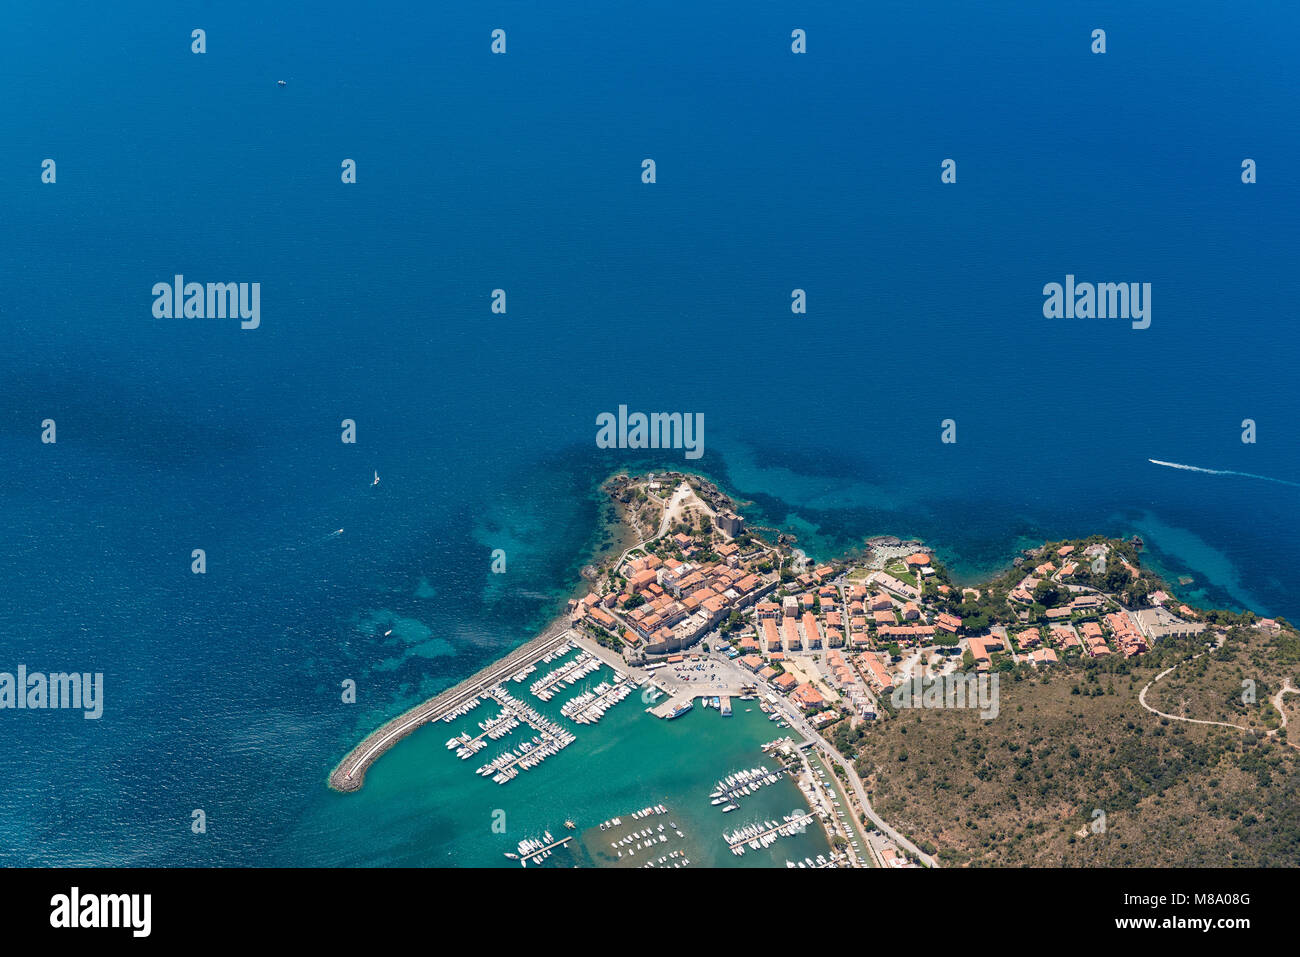 Aerial image of the beautiful town and small port of Talamone at the Tuscany Mediterranean coast in Italy Stock Photo